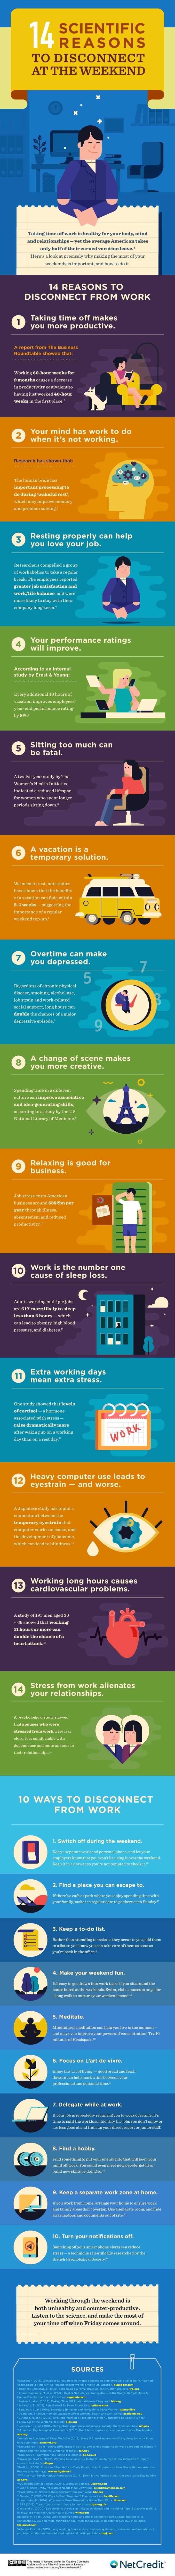 Why You Shouldn't Work on Weekends Infographic - http://elearninginfographics.com/why-you-shouldnt-work-on-weekends-infographic/